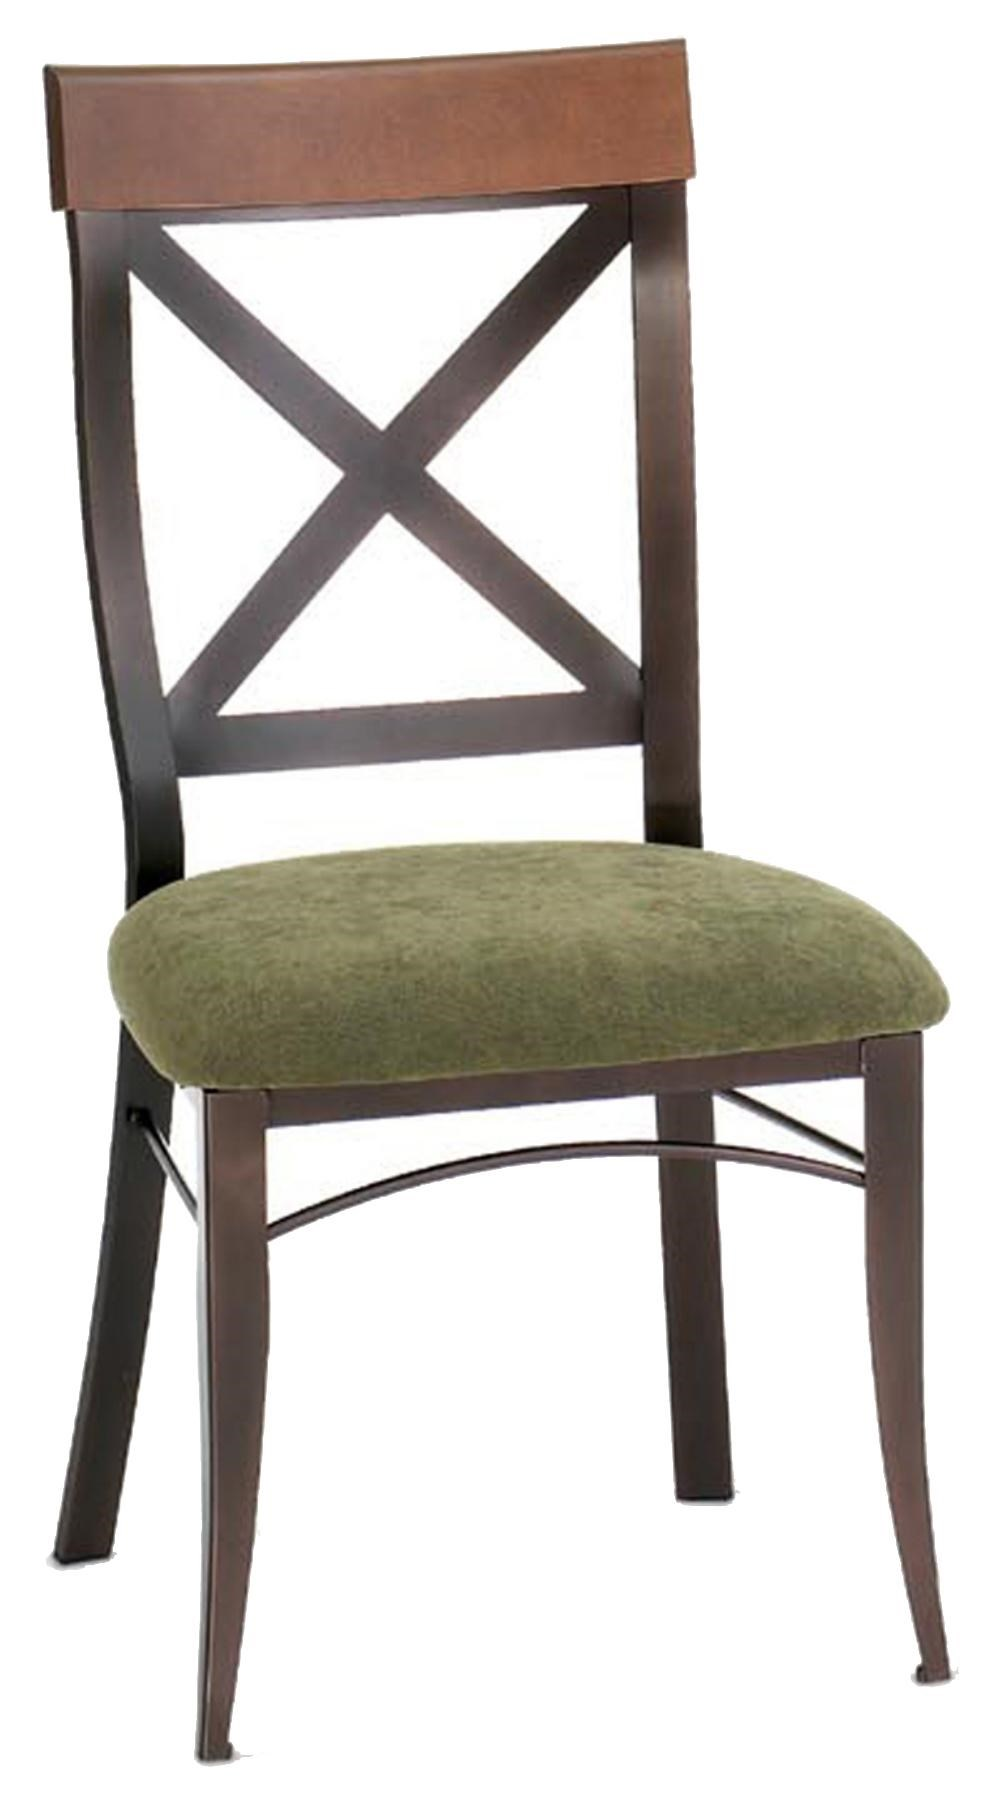 Country Kitchen Chairs Countryside Kyle Kitchen Side Chair In Rustic Country Style By Amisco At Dunk Bright Furniture